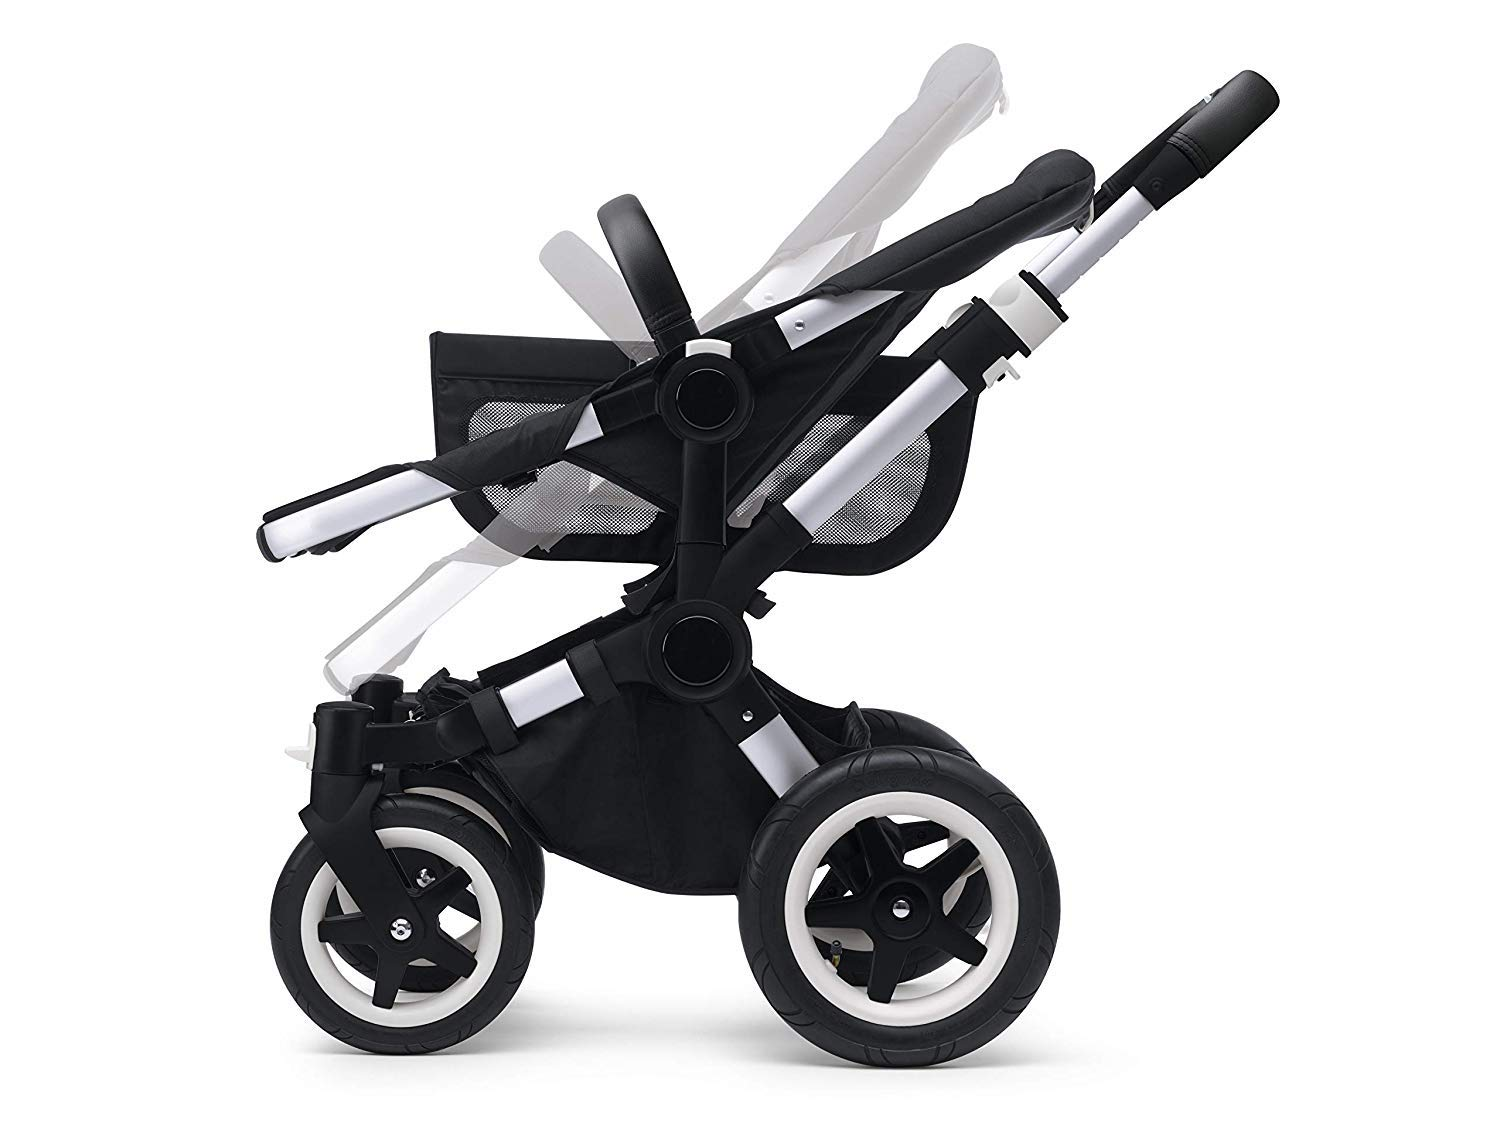 Bugaboo Donkey 2 Twin, 2 in 1 Double Pram and Double Pushchair for Twins, Steel Blue Bugaboo The name donkey says it all: it's the bugaboo pushchair with the most storage space. Compatible with the bugaboo donkey & donkey2 6